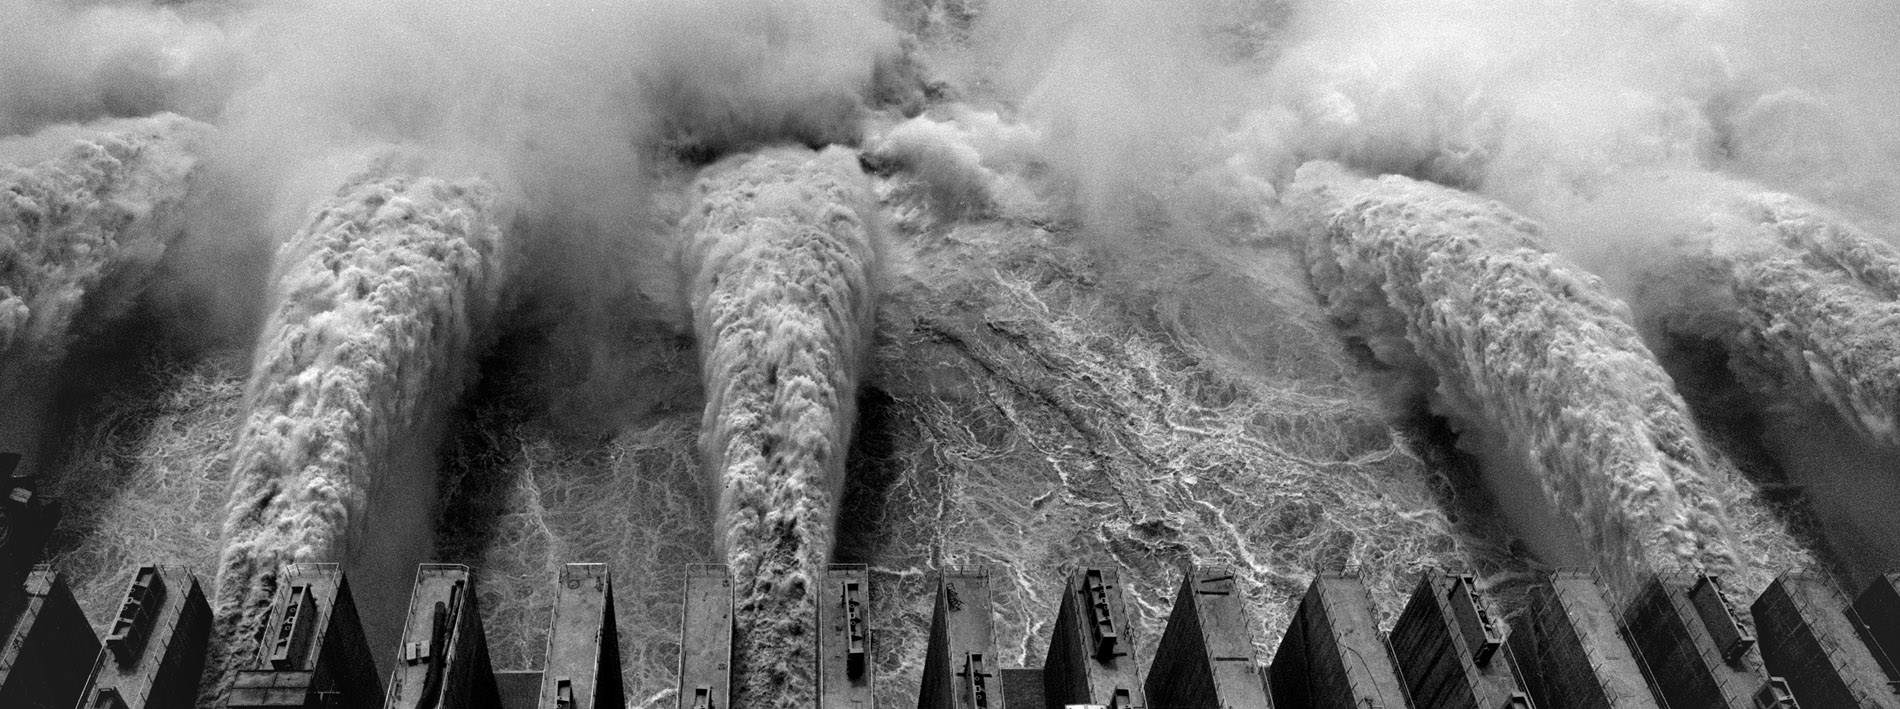 The water flows out of the turbines of the three gorges dam on the Yangtze river.